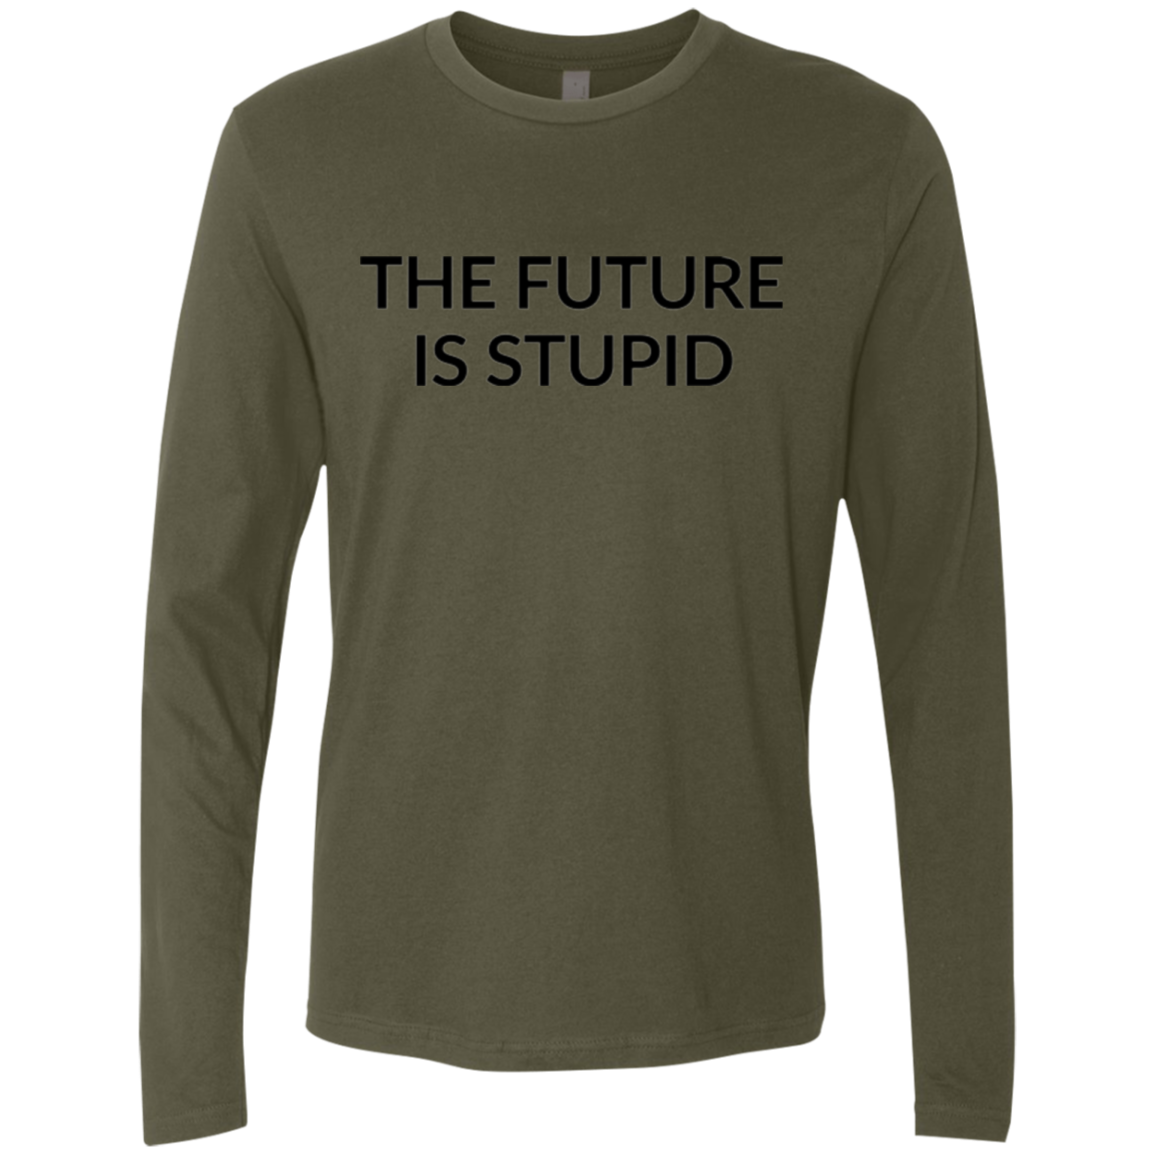 The Future is Stupid Men's Long Sleeve Tee